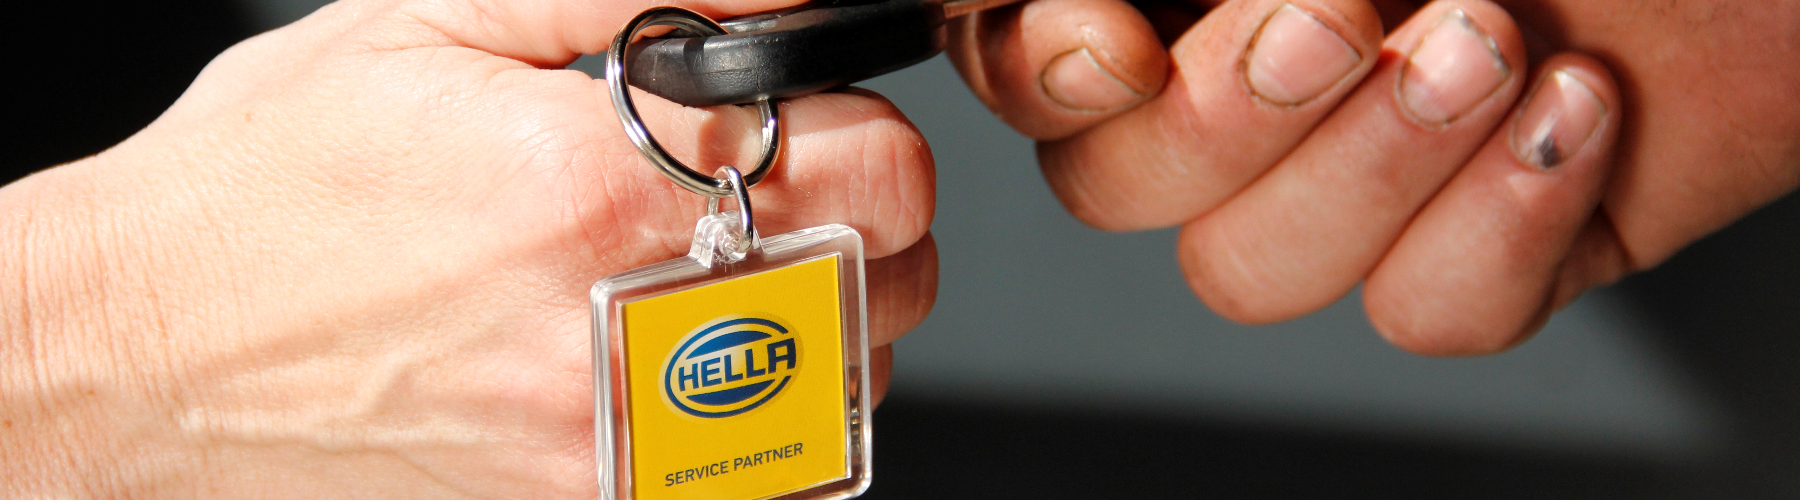 Hella Service Partner cover image